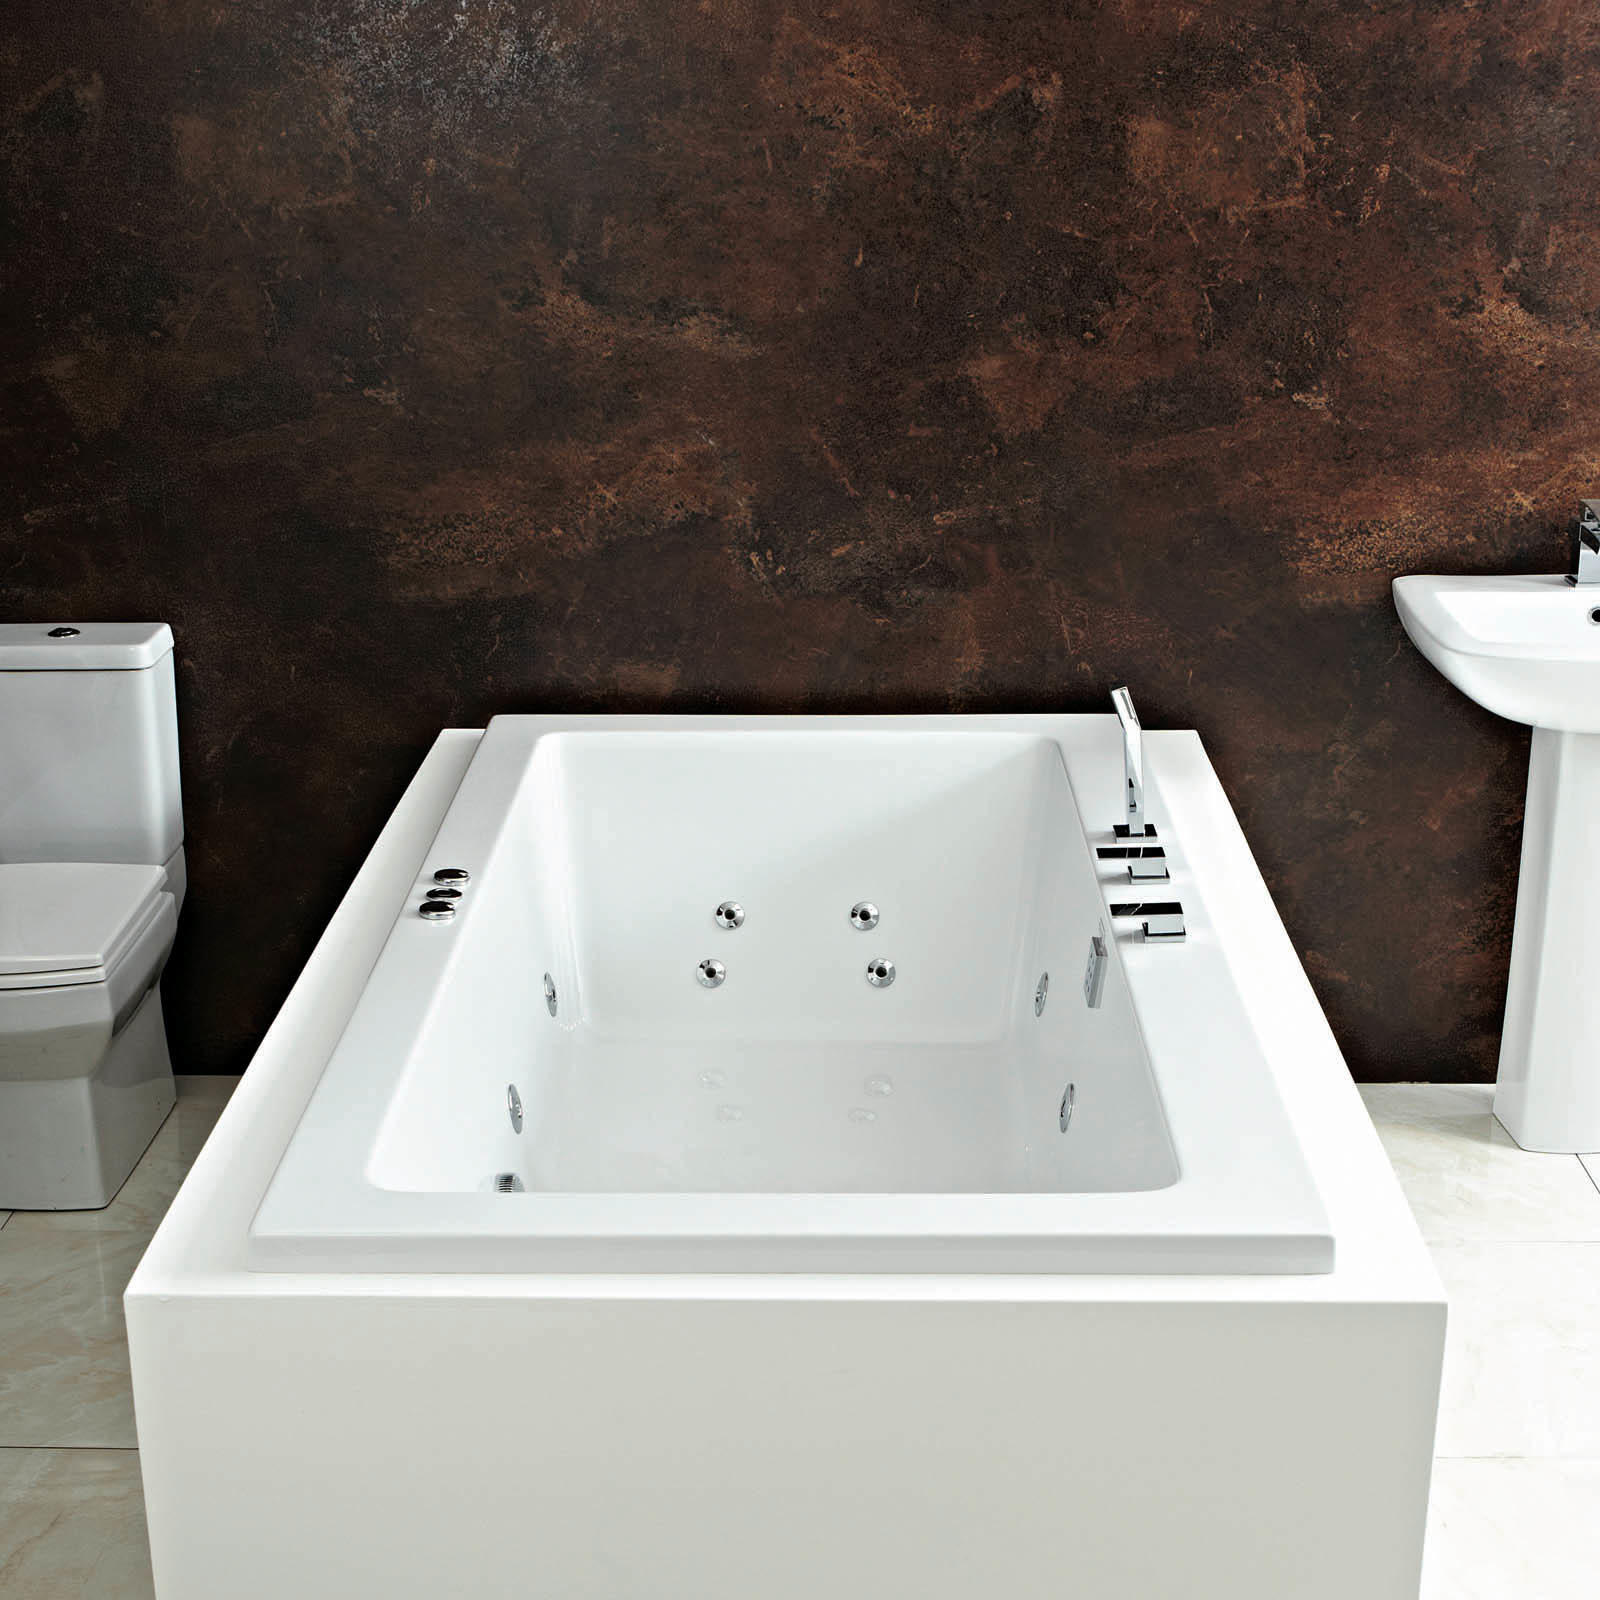 Titan 12 Jet Whirlpool Bath 1800 x 1000 mm